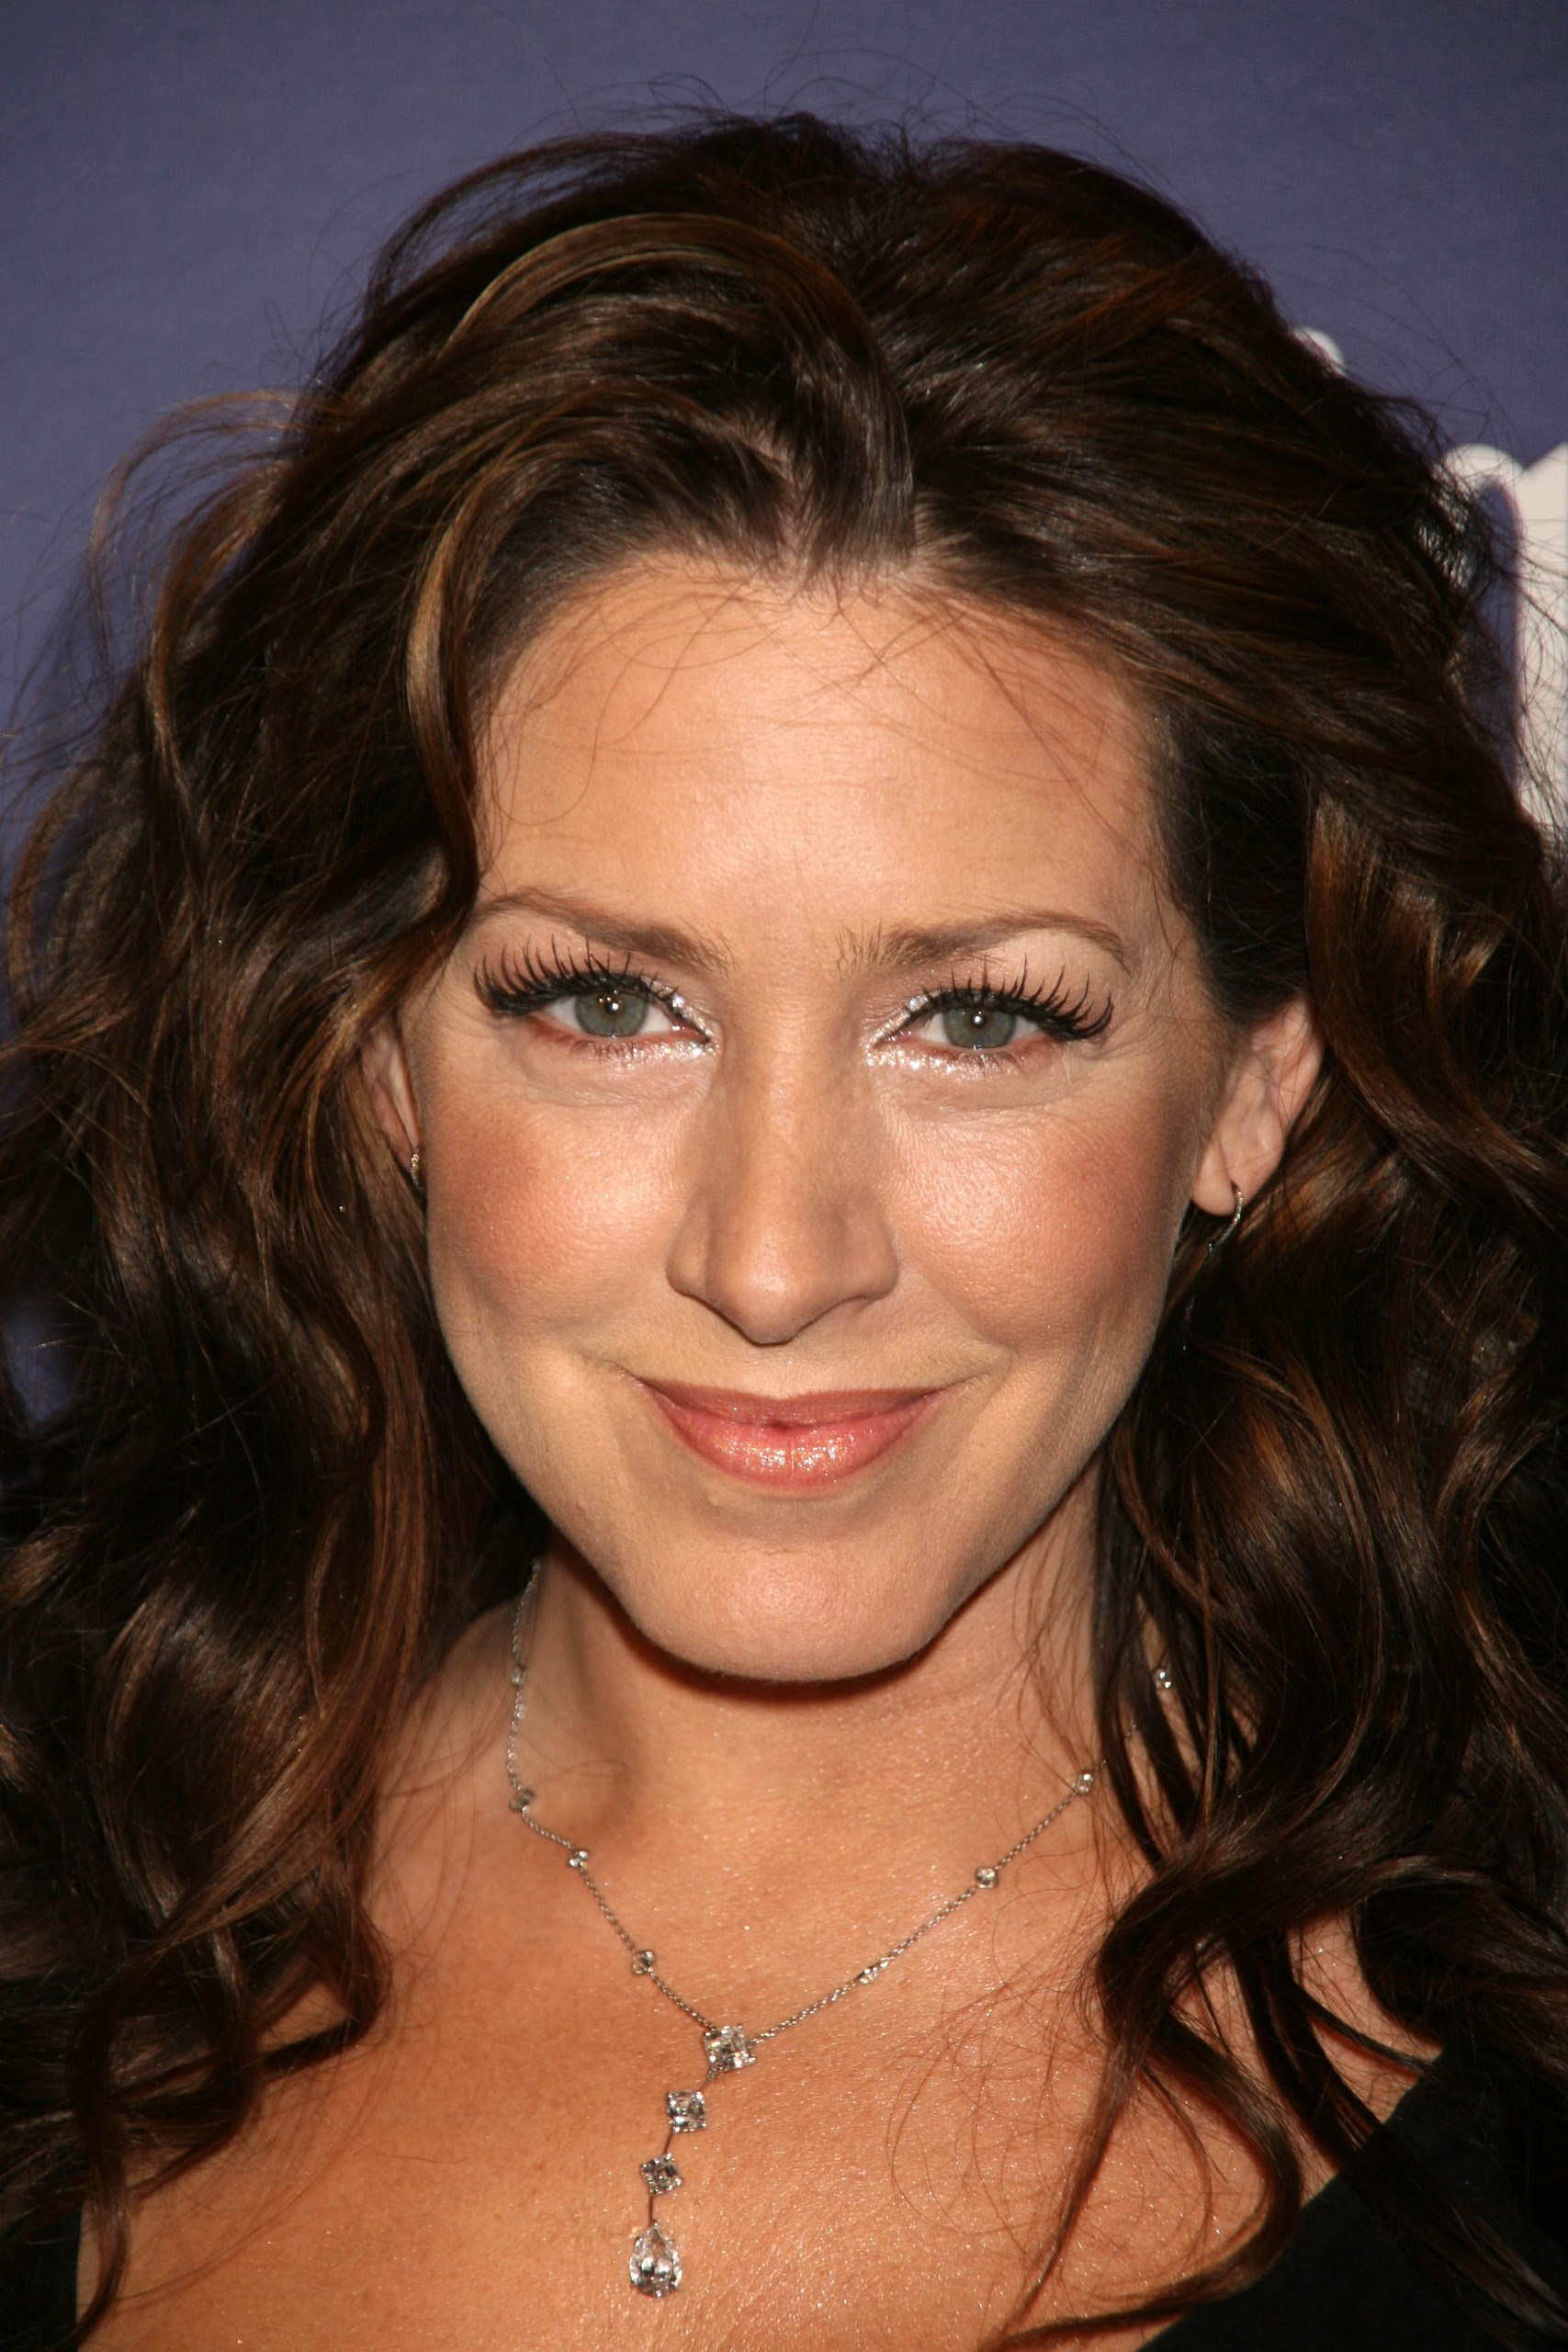 from Chace upschirt joely fisher porno